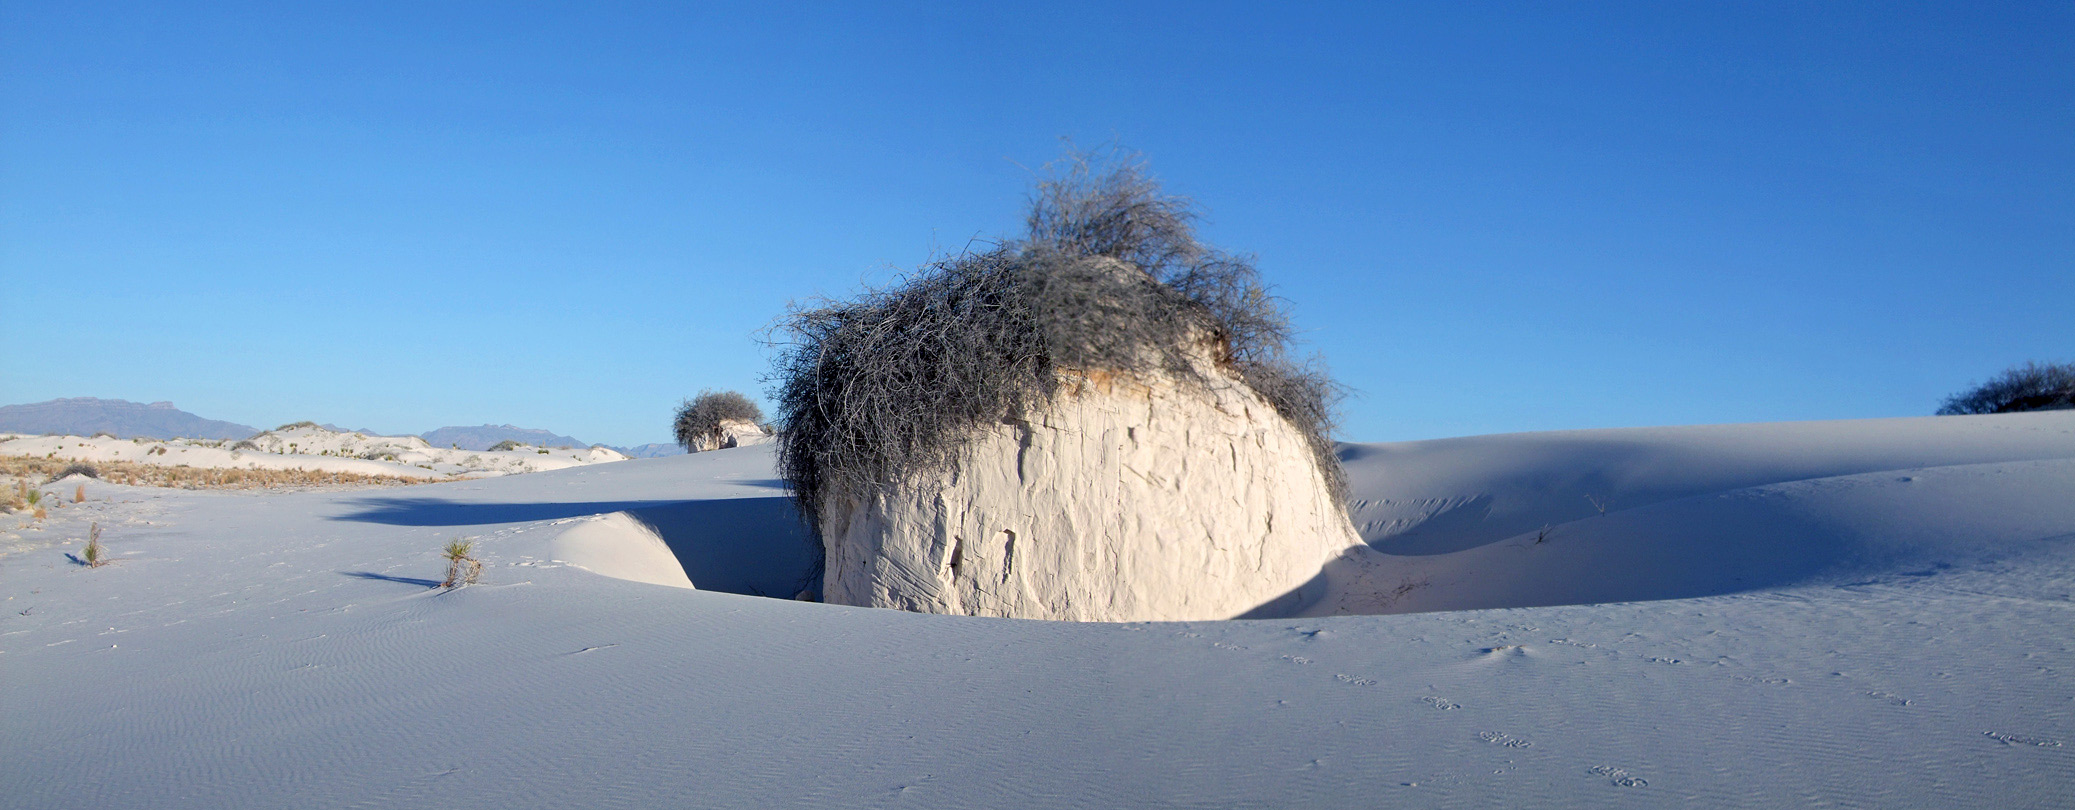 Mound of compacted gypsum